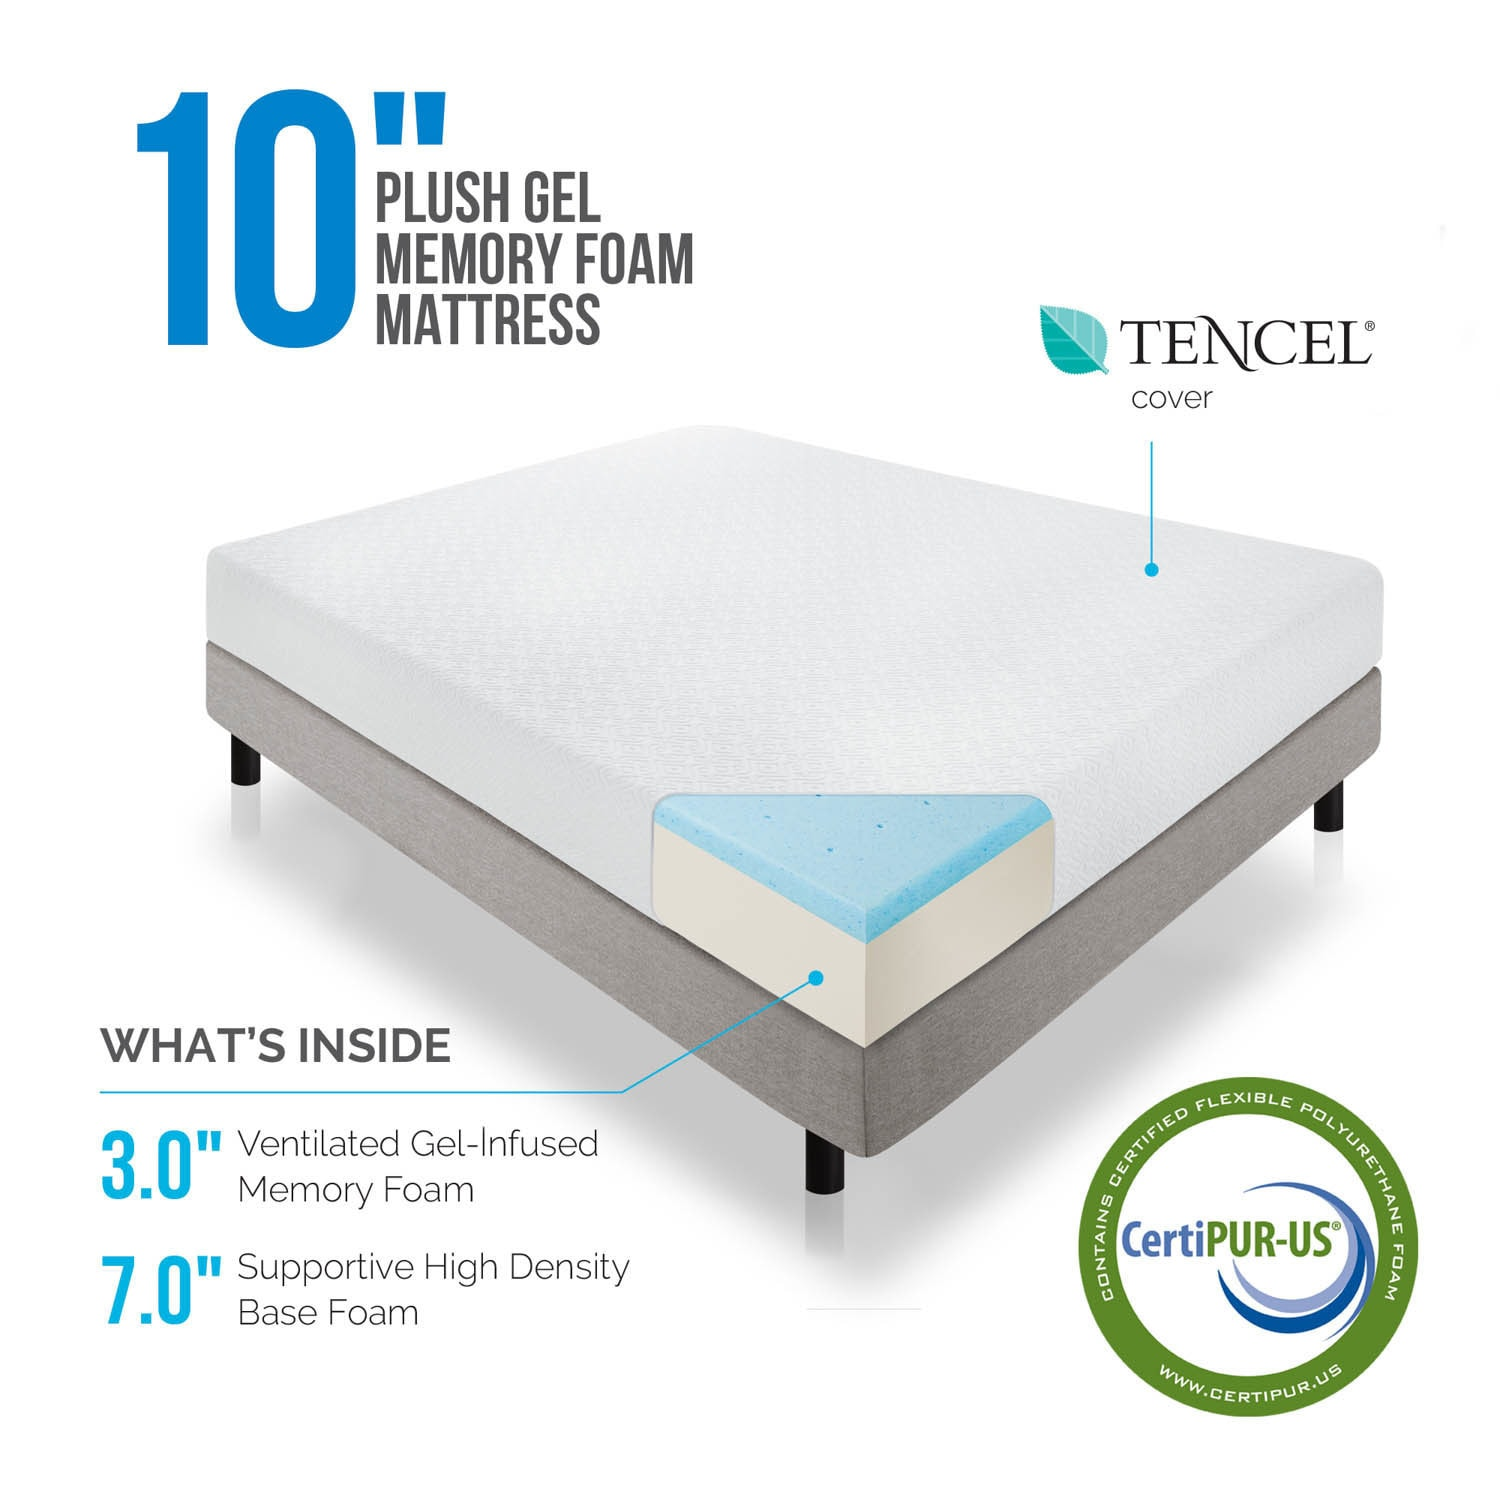 item set number gel mattresses upbeat foam memory sealy and queen t mattress stablesupport products